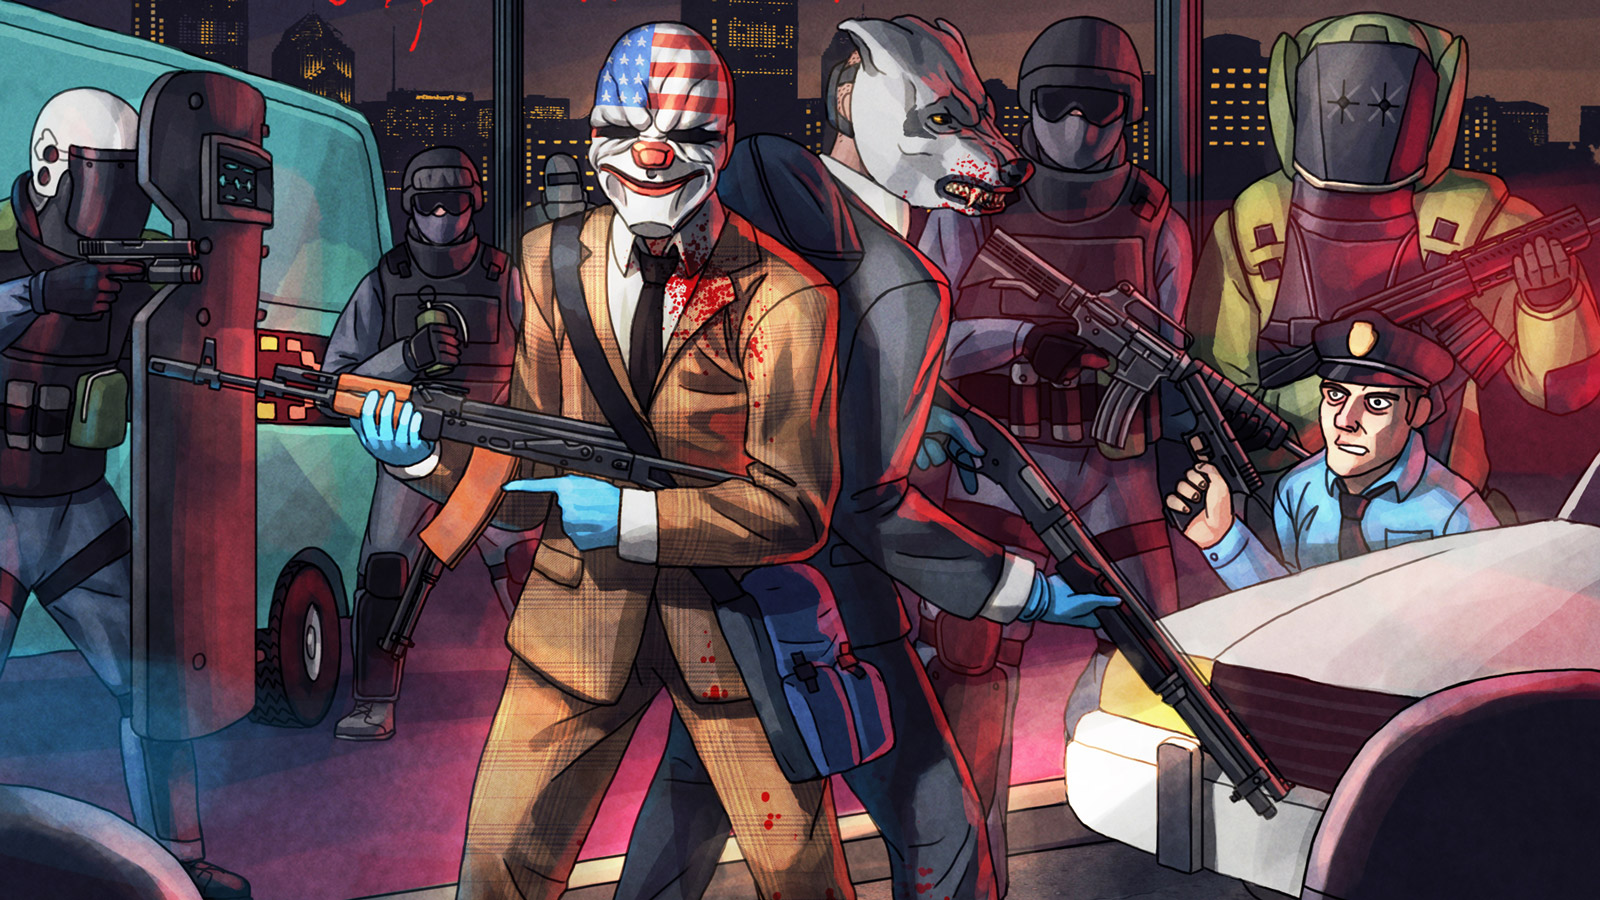 Free Payday 2 Wallpaper in 1600x900